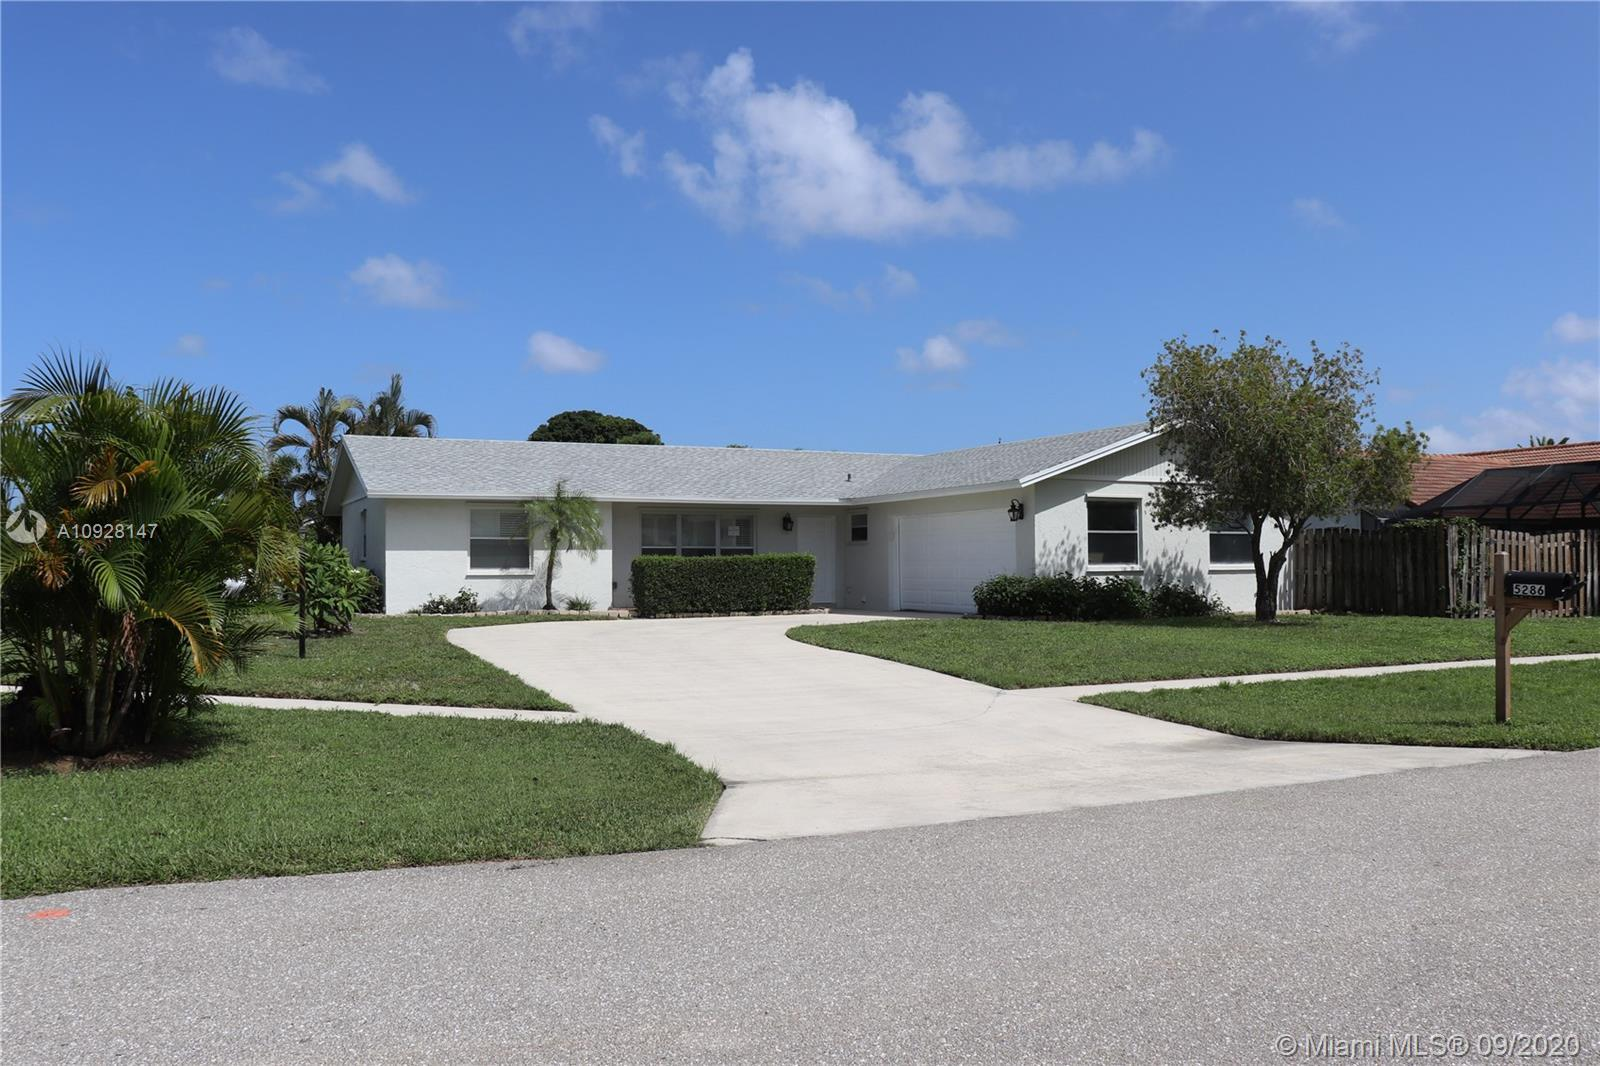 For Sale: Sitting on a big corner lot in great neighborhood, this property is a must see!  Remodeled